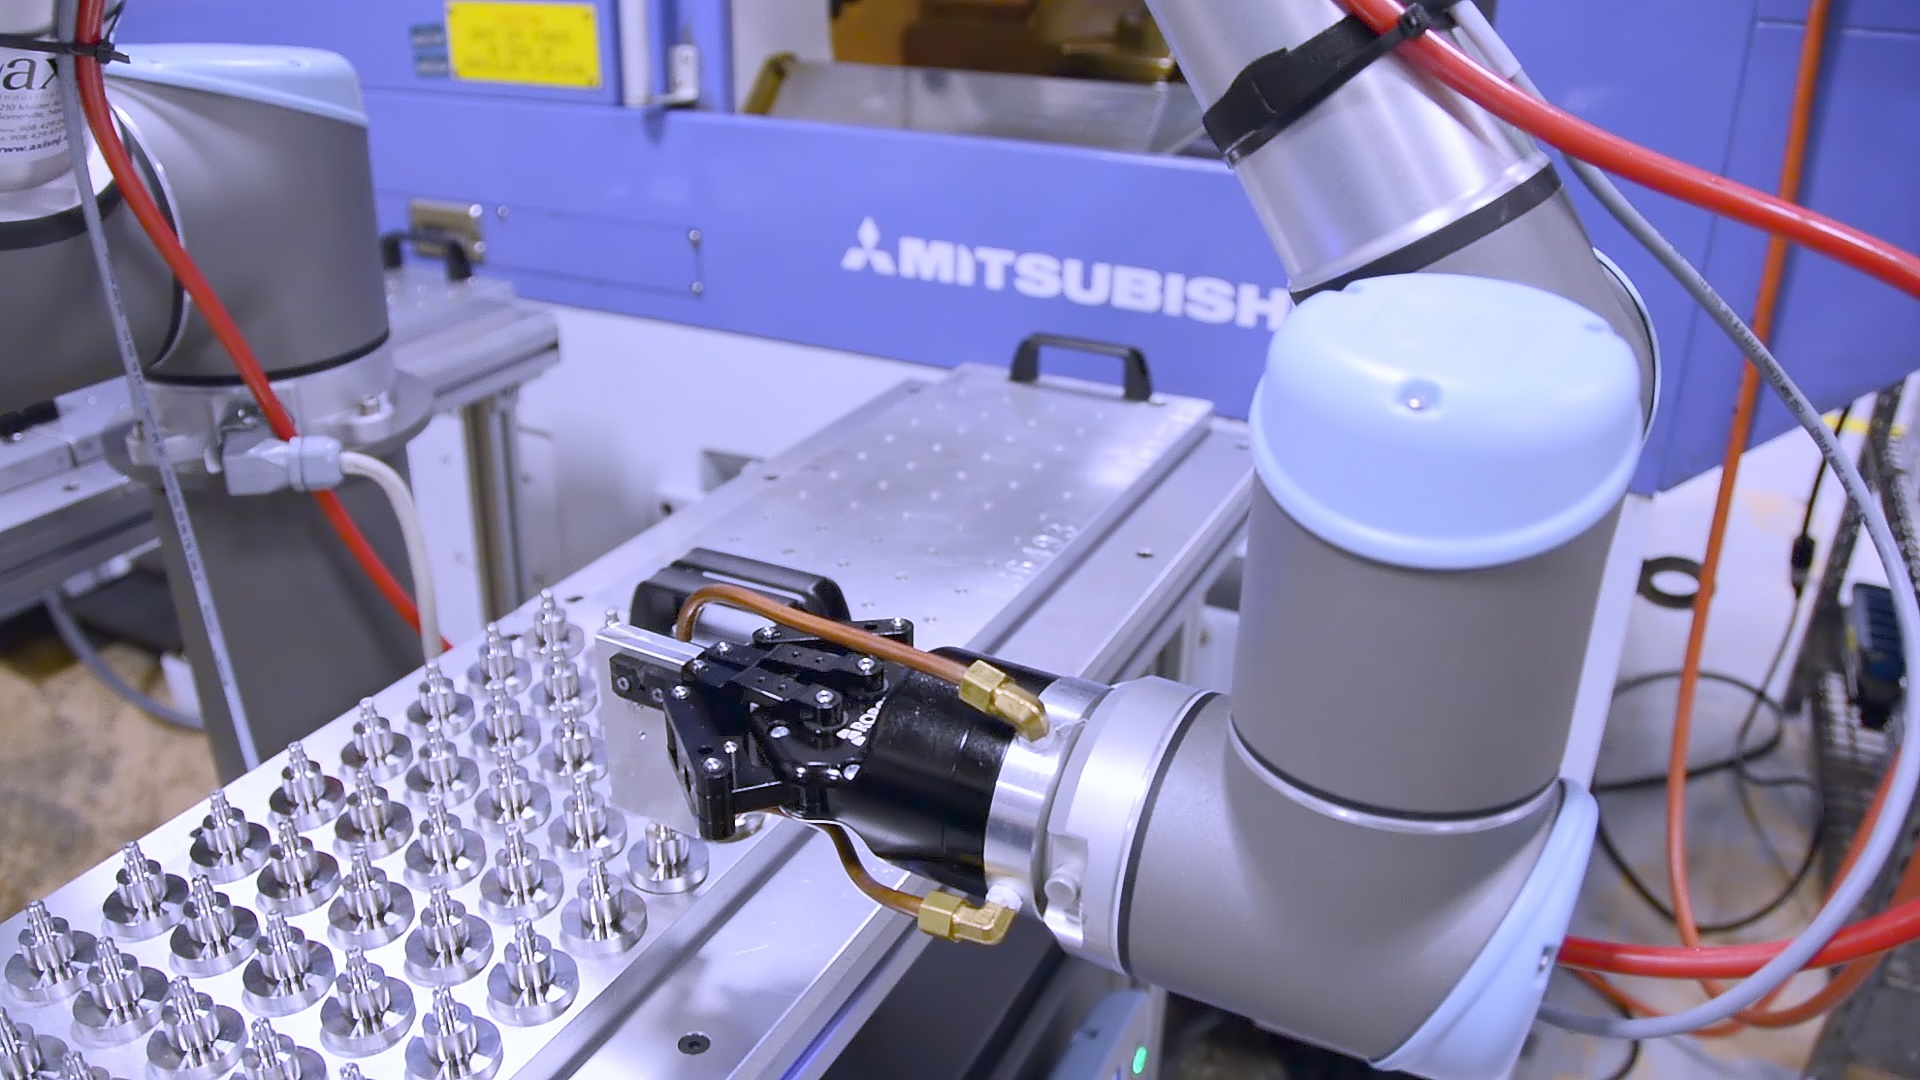 What Are Your Sources of Waste When Integrating a Robotic Cell?